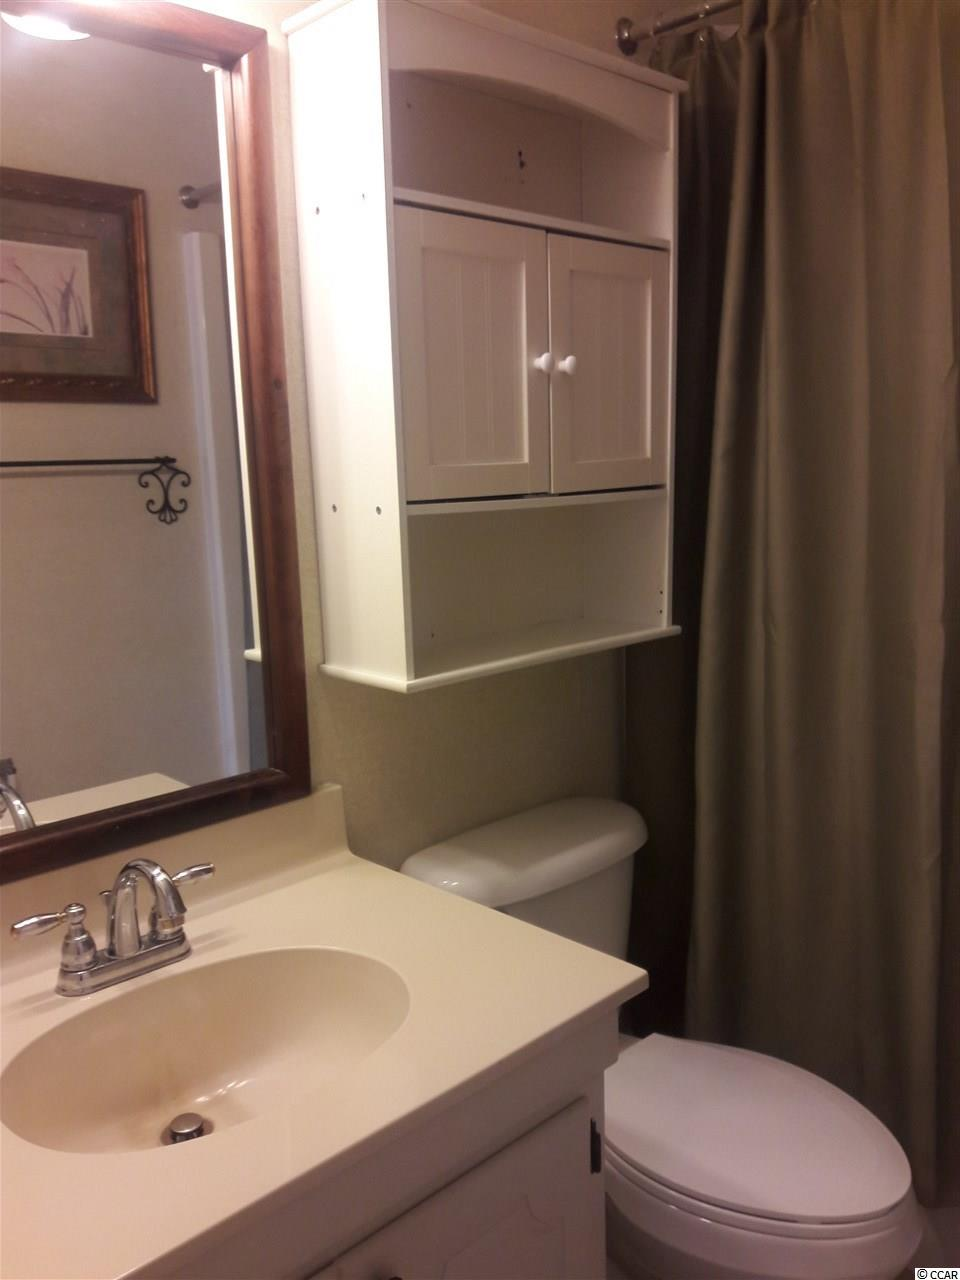 Interested in this  condo for $175,900 at  SEA CABIN is currently for sale